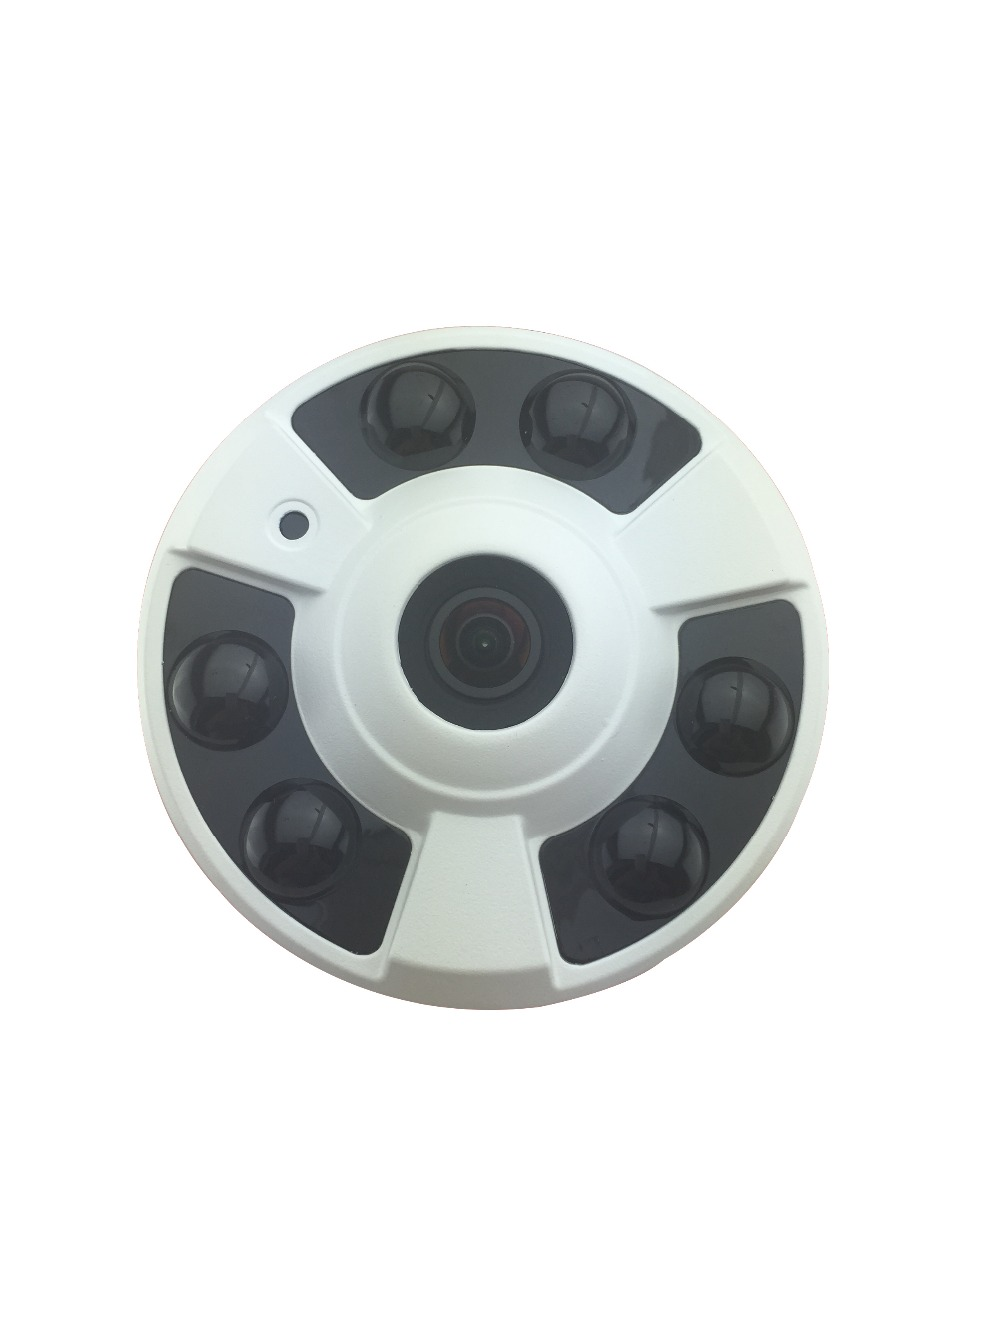 Fisheye wide angle 1080P POE IP Camera Security Night Vision Indoor Ceiling Onvif H 264 P2P